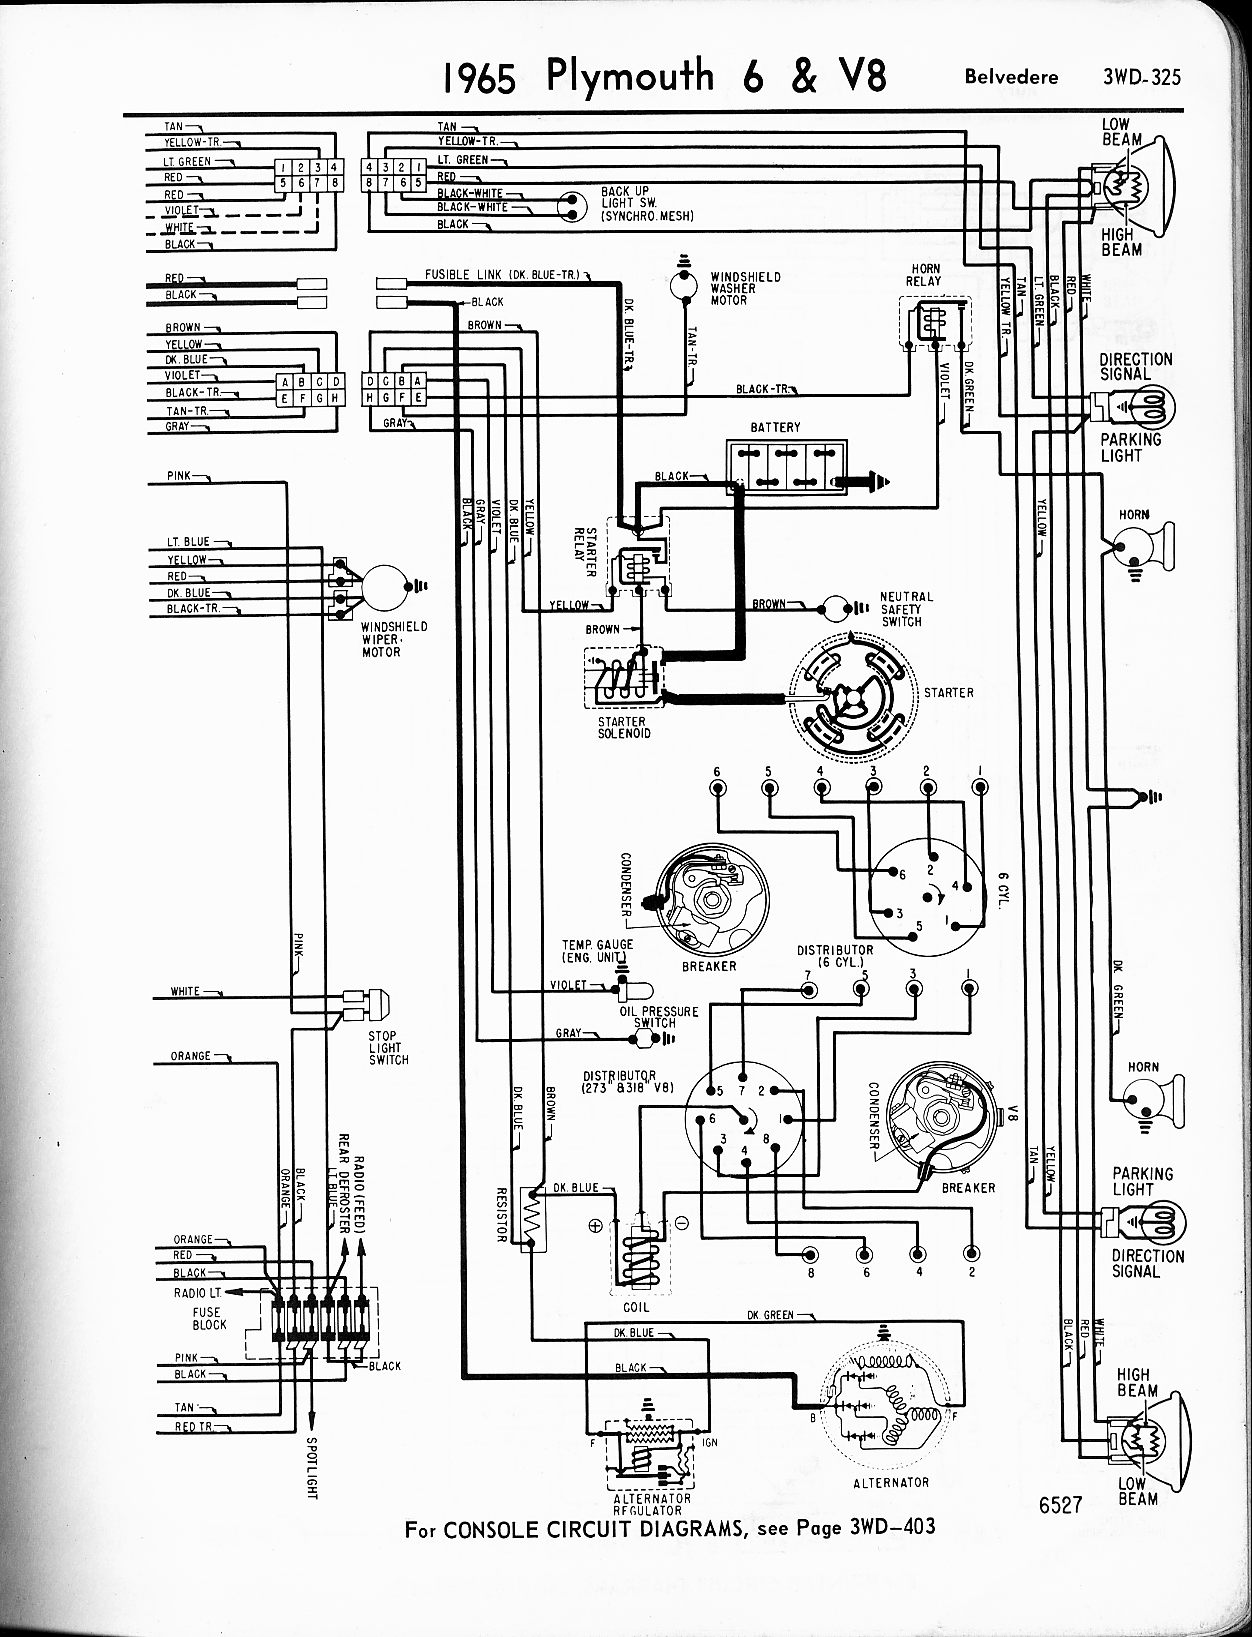 1956 - 1965 Plymouth Wiring - The Old Car Manual Project Jeep Cj Ignition Switch Wiring Diagram on jeep cj ignition switch removal, jeep cj wiper switch wiring diagram, jeep wrangler yj ignition switch wiring diagram, jeep cj ignition switch assembly diagram, jeep cj engine wiring diagram, jeep zj ignition switch wiring diagram, jeep ignition switch problems,